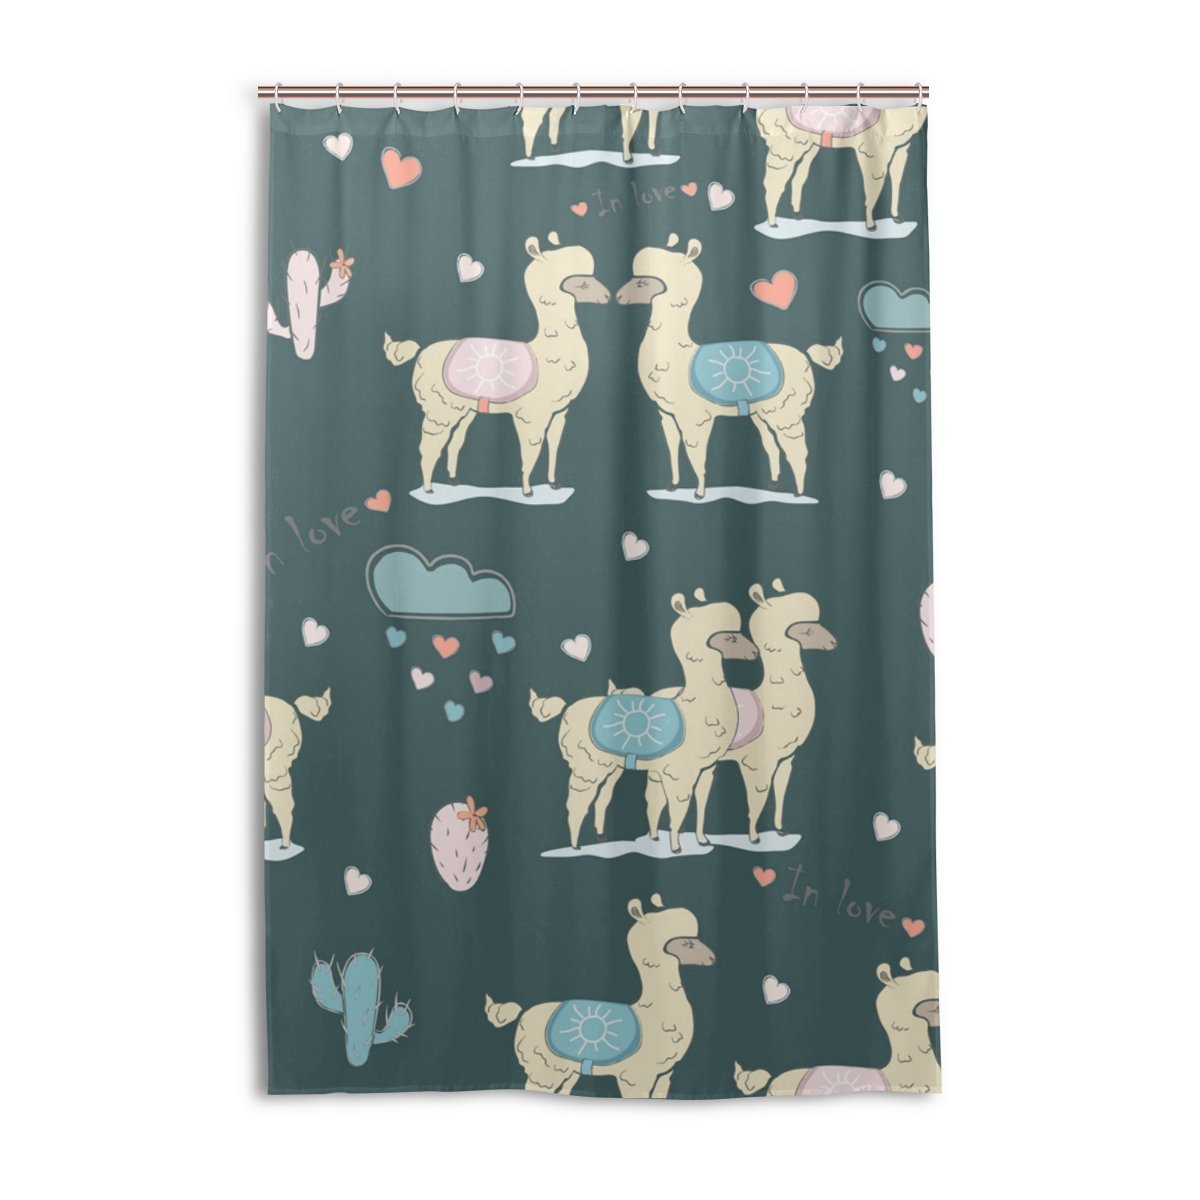 Amazon Alpaca In Love Cute Shower Curtain Bath Curtains Hooks 48 X 72 Inches Polyester Fabric Waterproof For Bathroom Window Home Kitchen